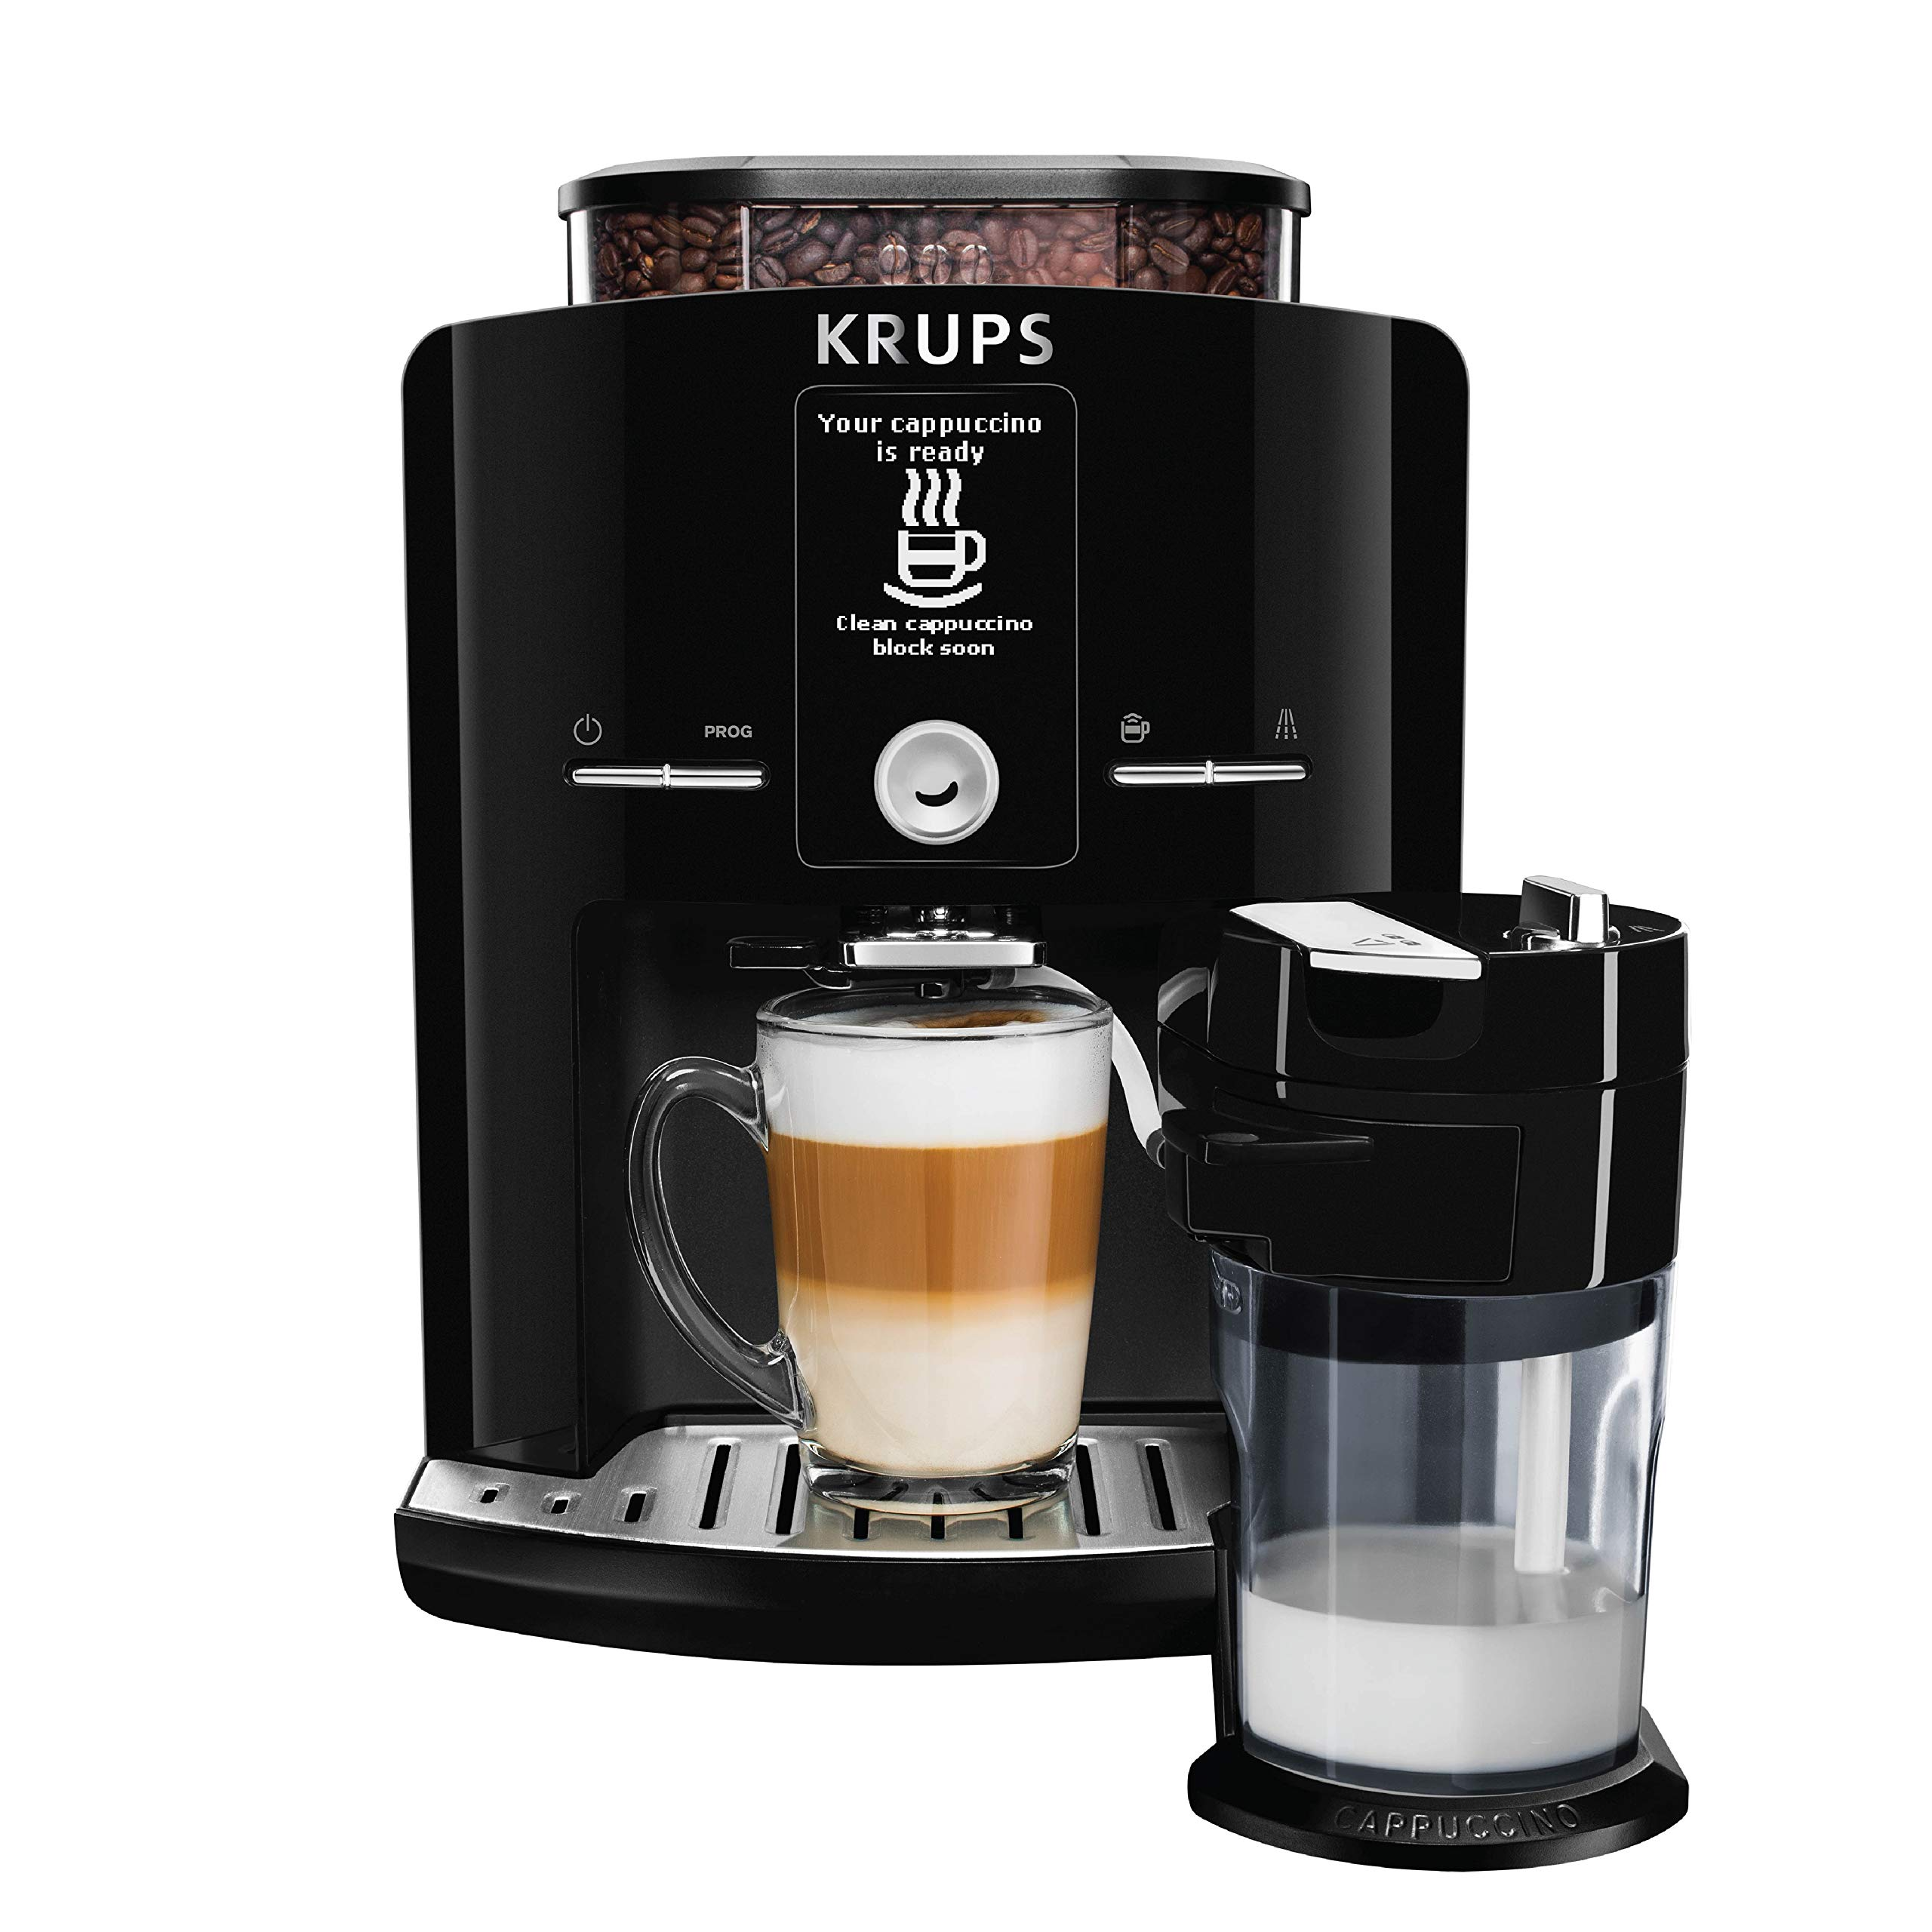 KRUPS EA8298 Cappuccino Bar, Fully Automatic 57-Ounce, Preset drinks, LCD Display, Integrated Milk Froth System by KRUPS